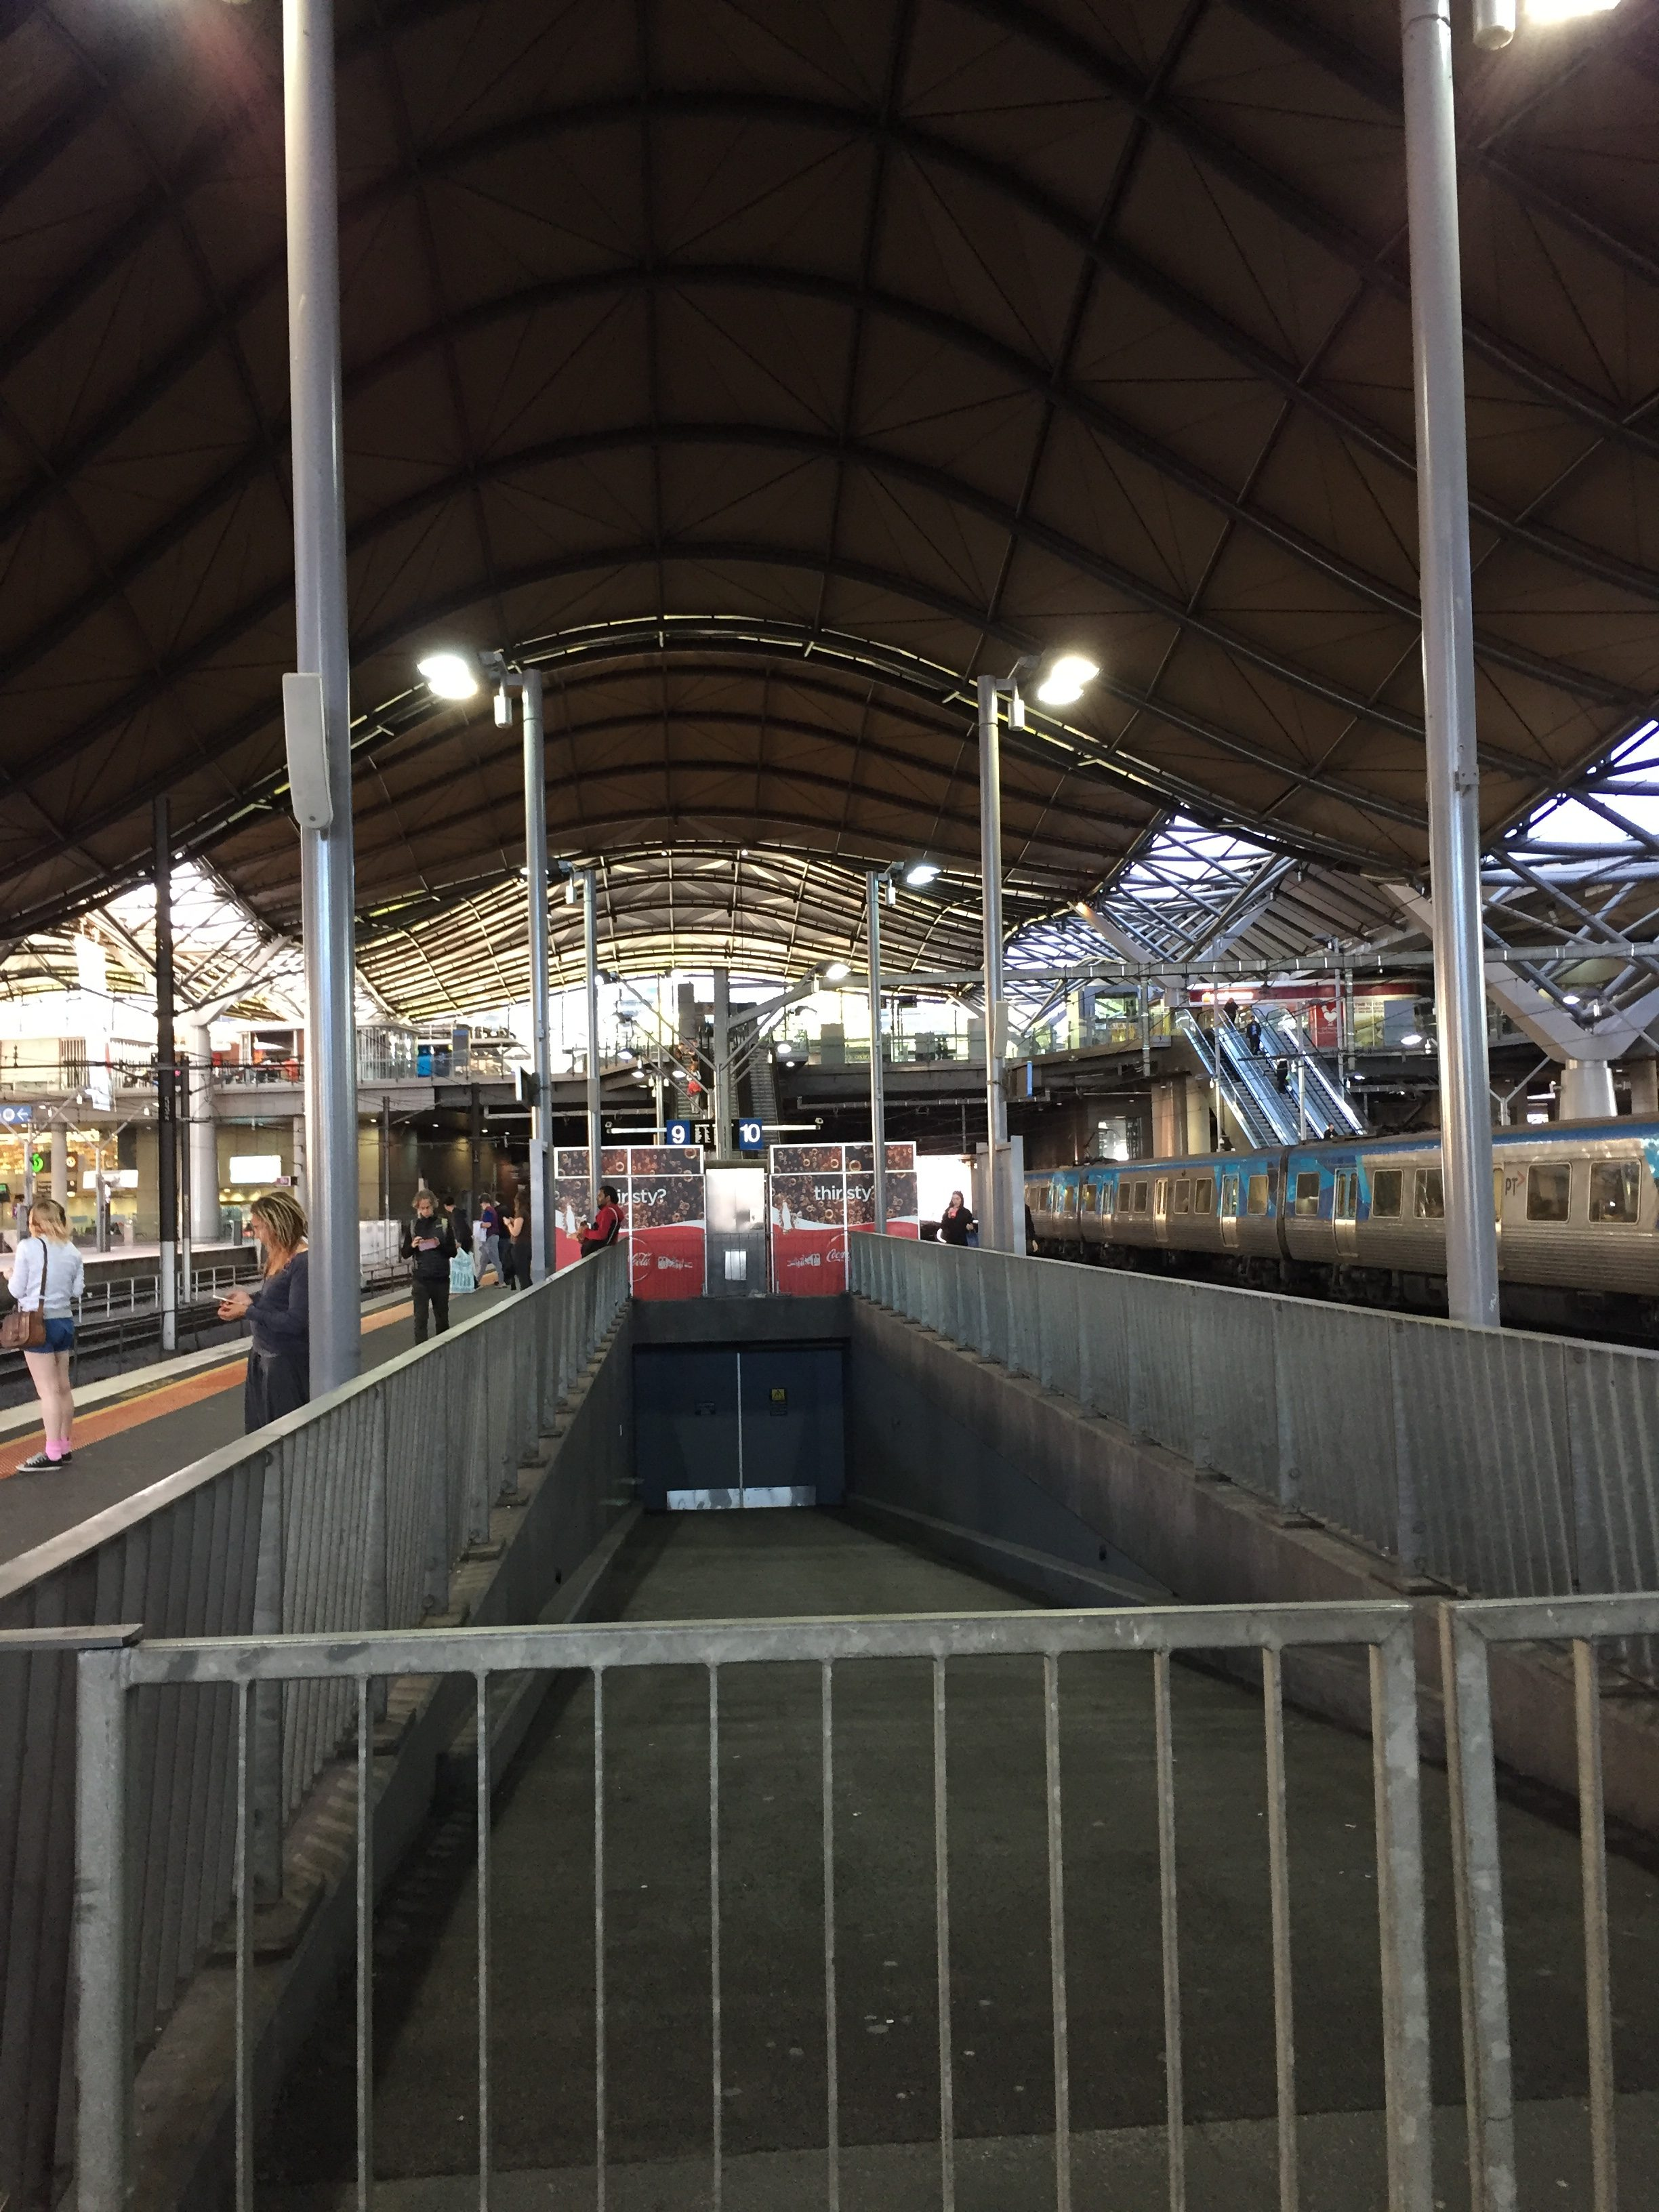 Platform at Southern Cross train station in Melbourne